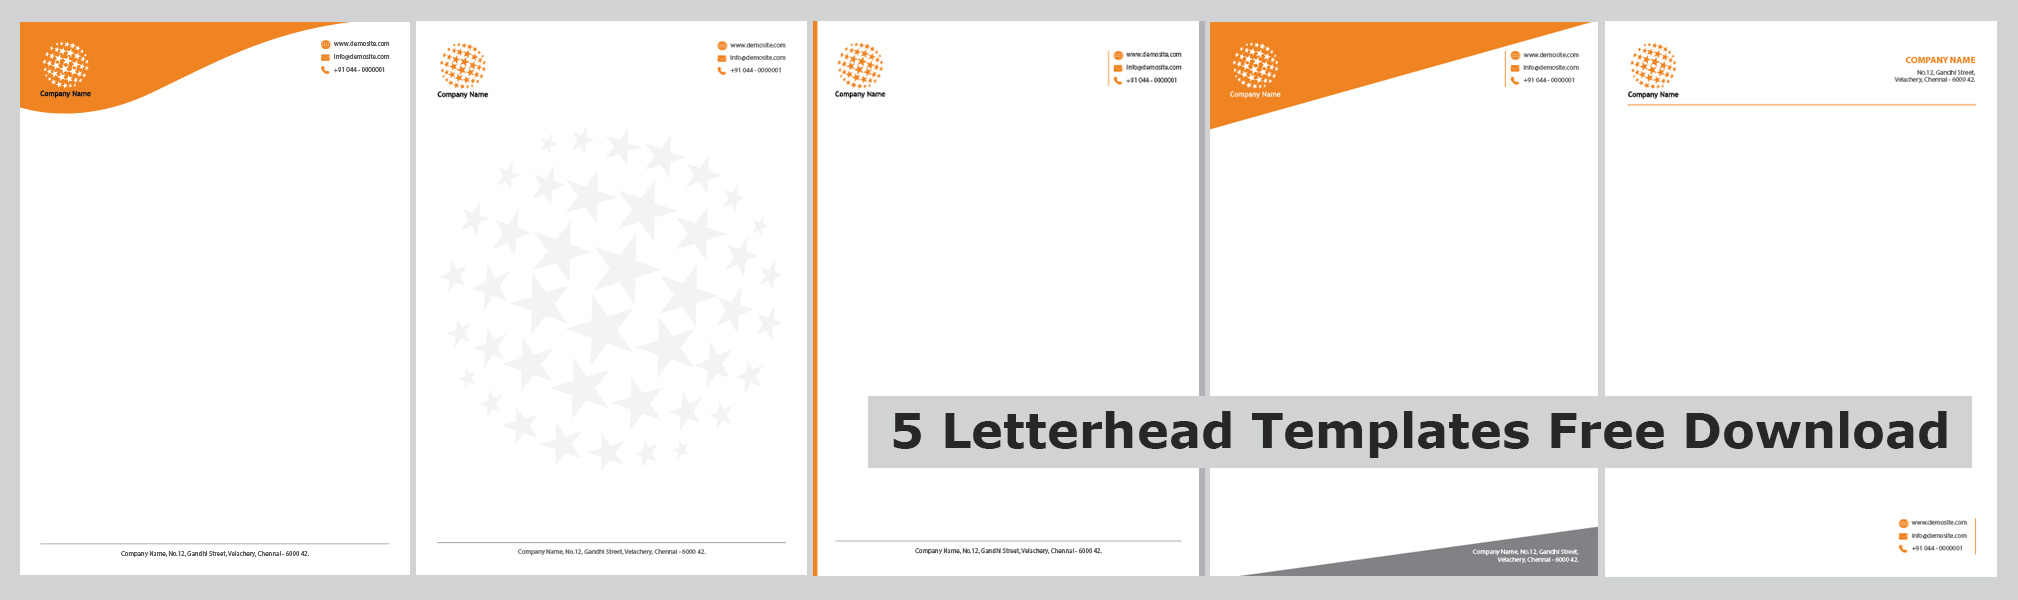 Letterhead Templates Free Download